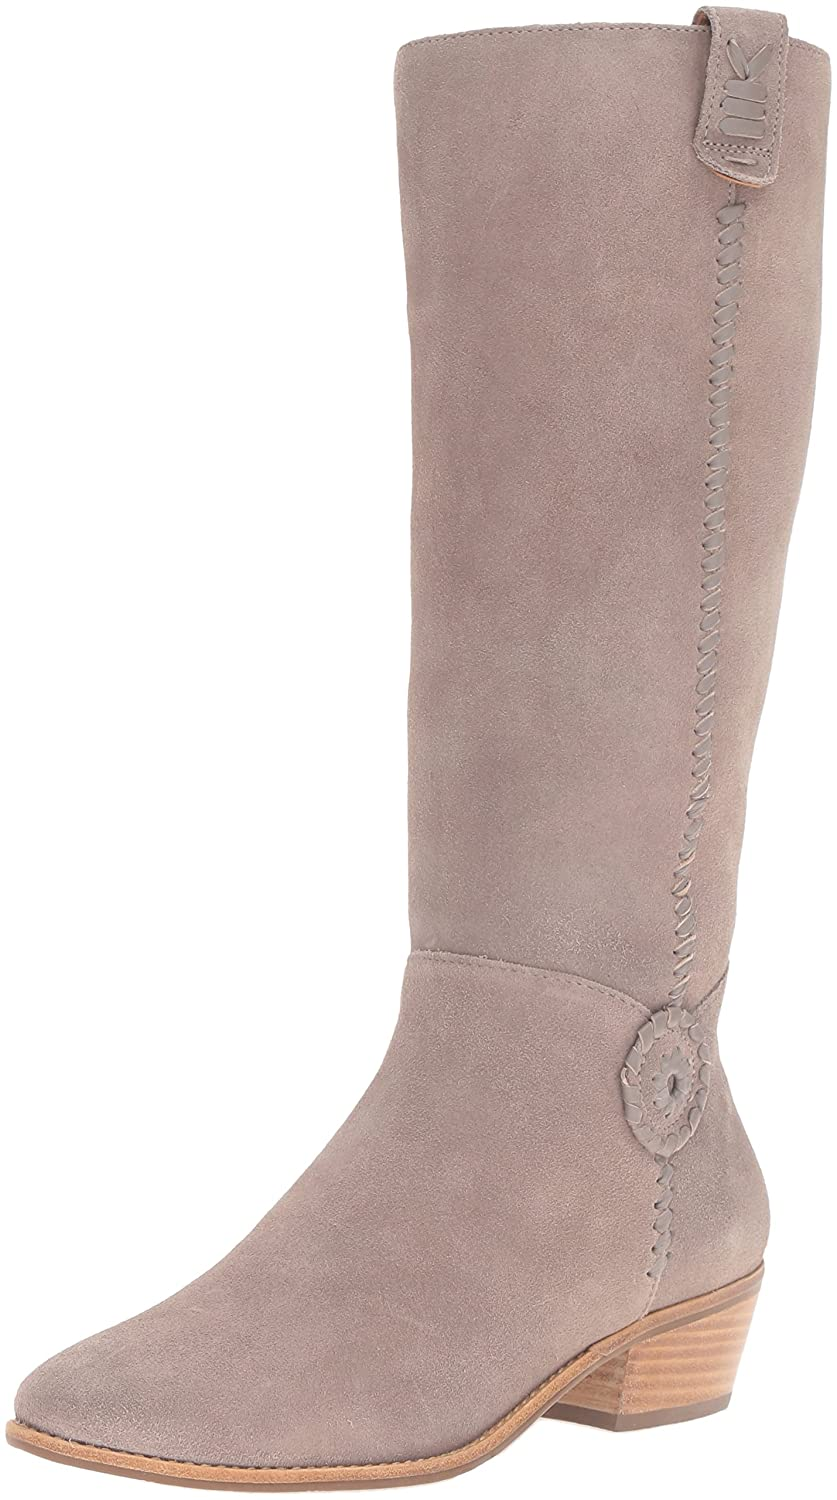 Jack Rogers Women's Sawyer Rain Boot B01DCSIGVQ 6 B(M) US|Light Grey Suede